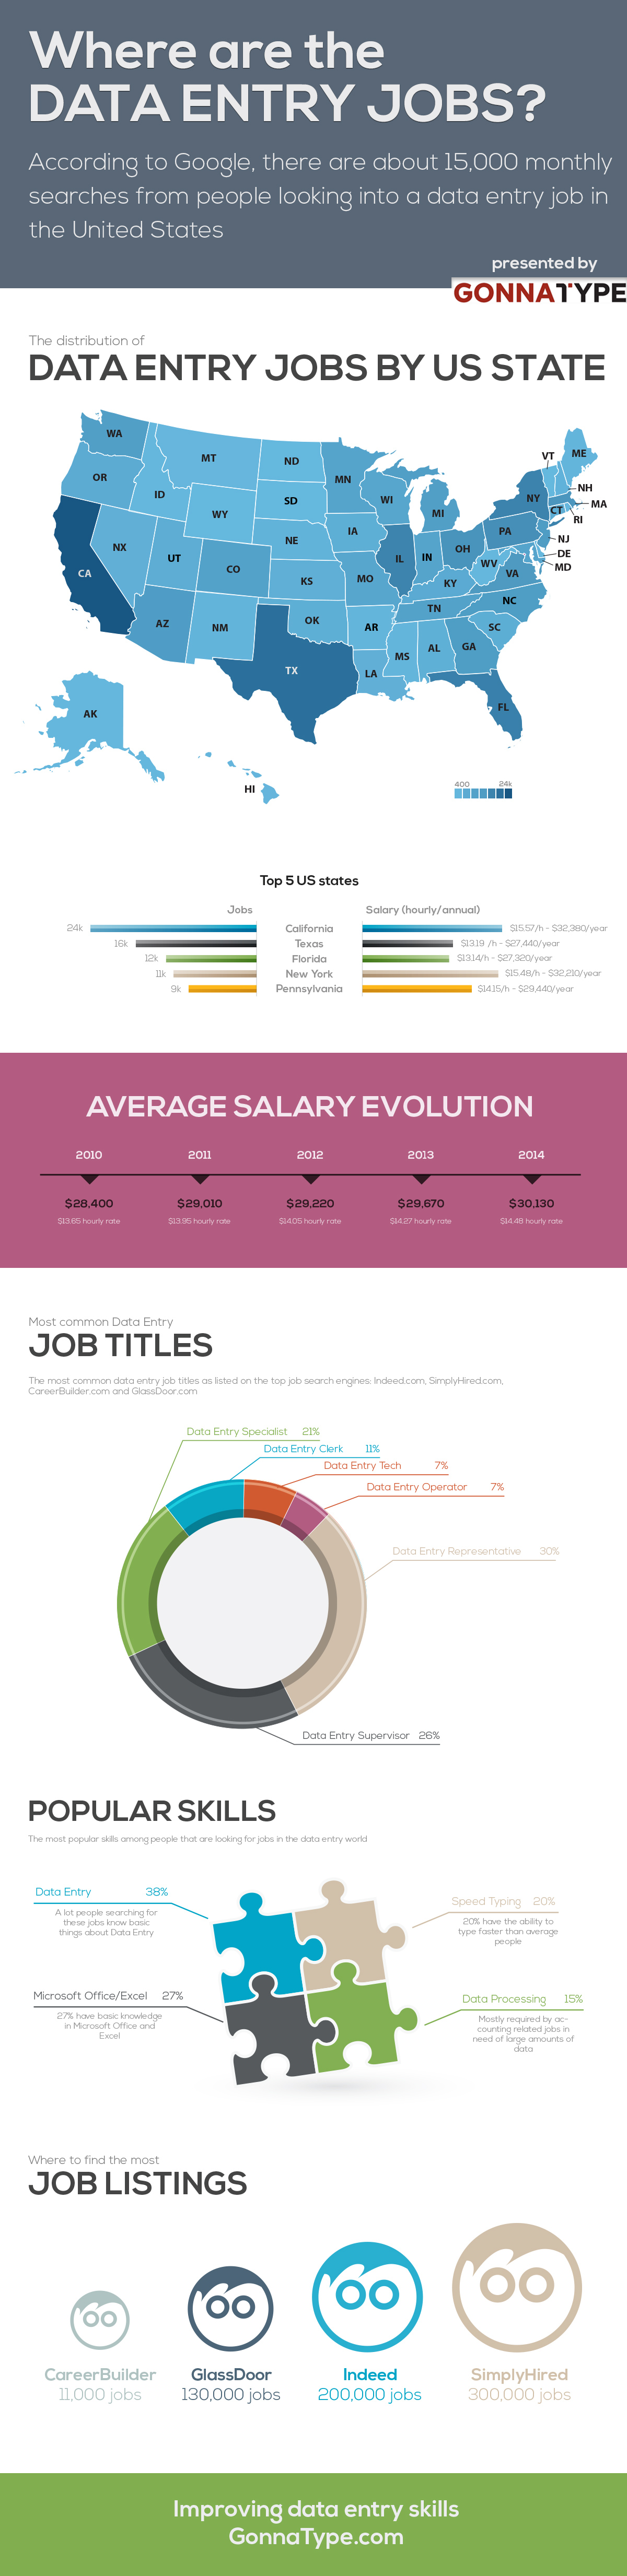 Data entry jobs infographic